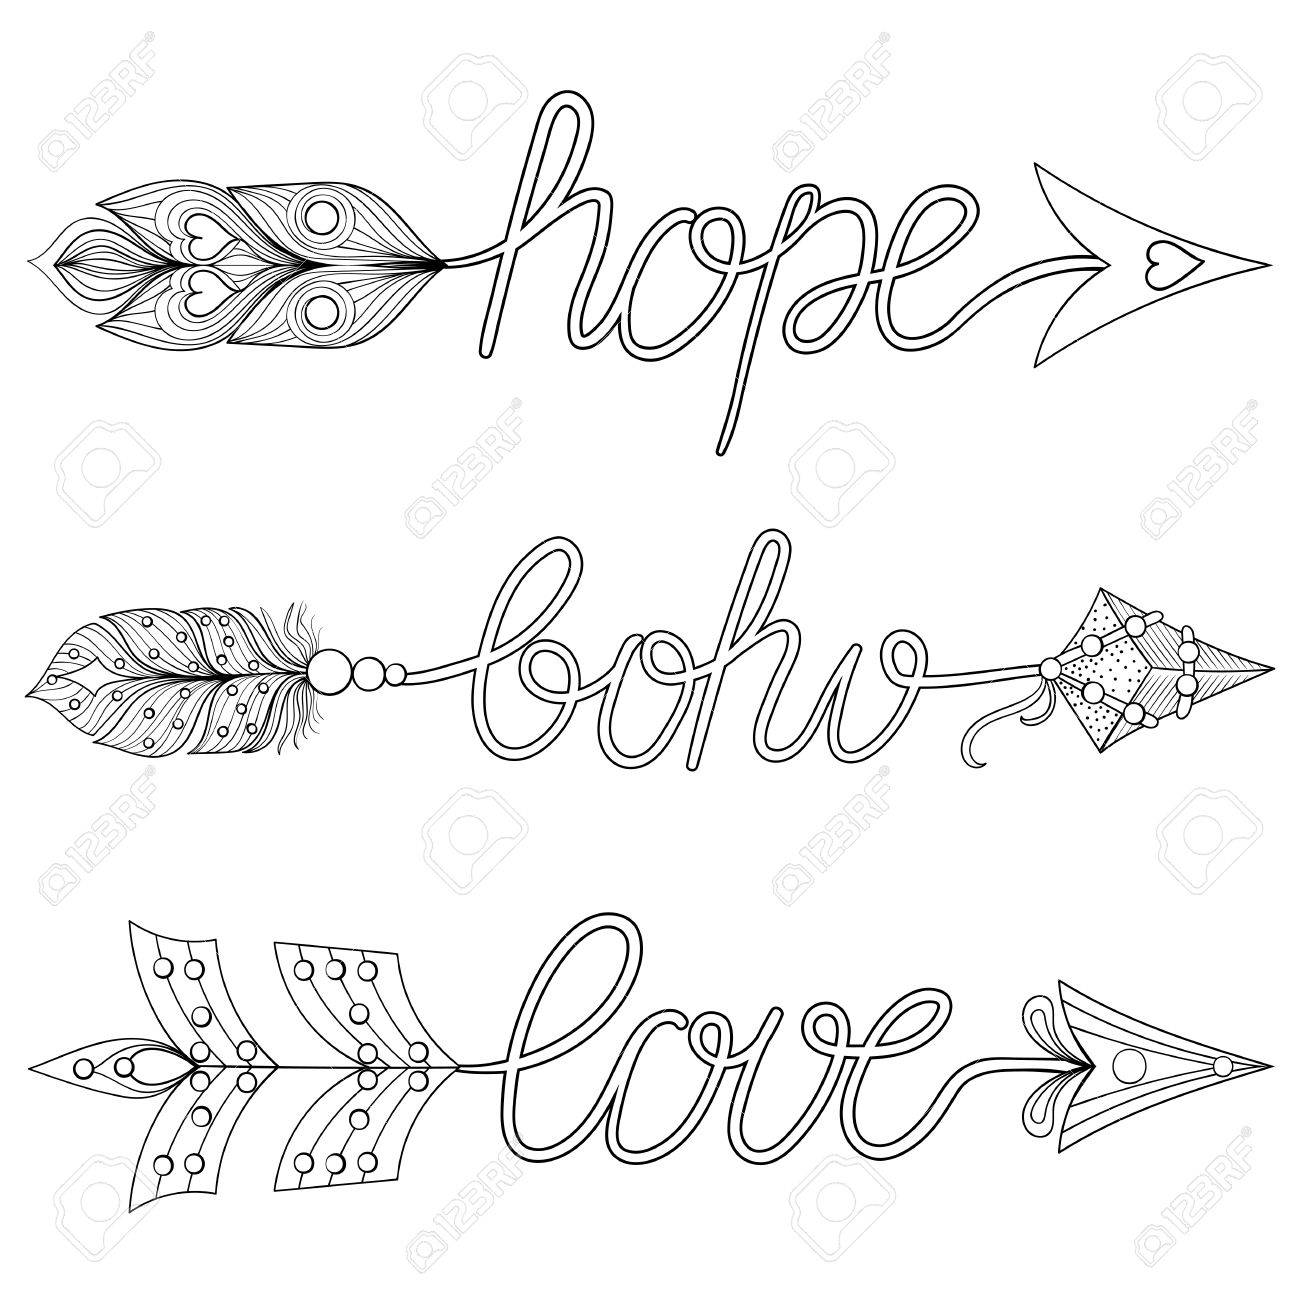 bohemian arrows signs boho love hope with feathers decorative